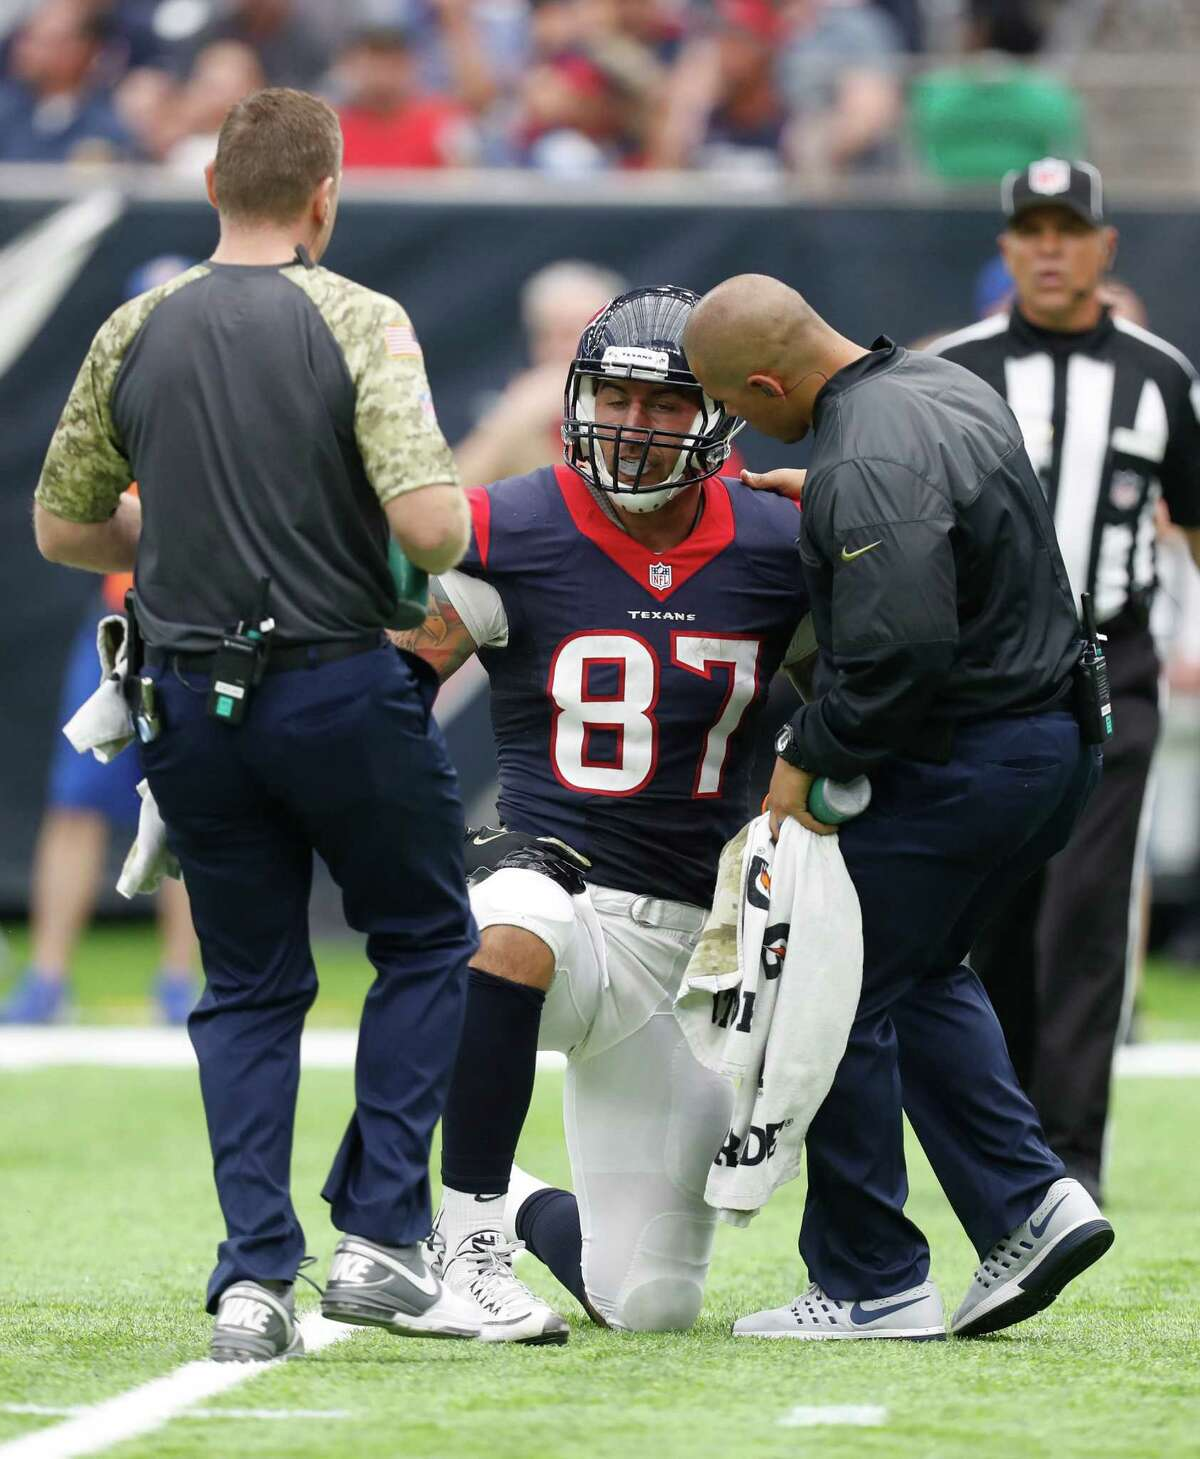 Houston Texans tight end C.J. Fiedorowicz (87) is tended to on the field after an injury during the second quarter an NFL football game at NRG Stadium, Sunday,Oct. 30, 2016 in Houston.